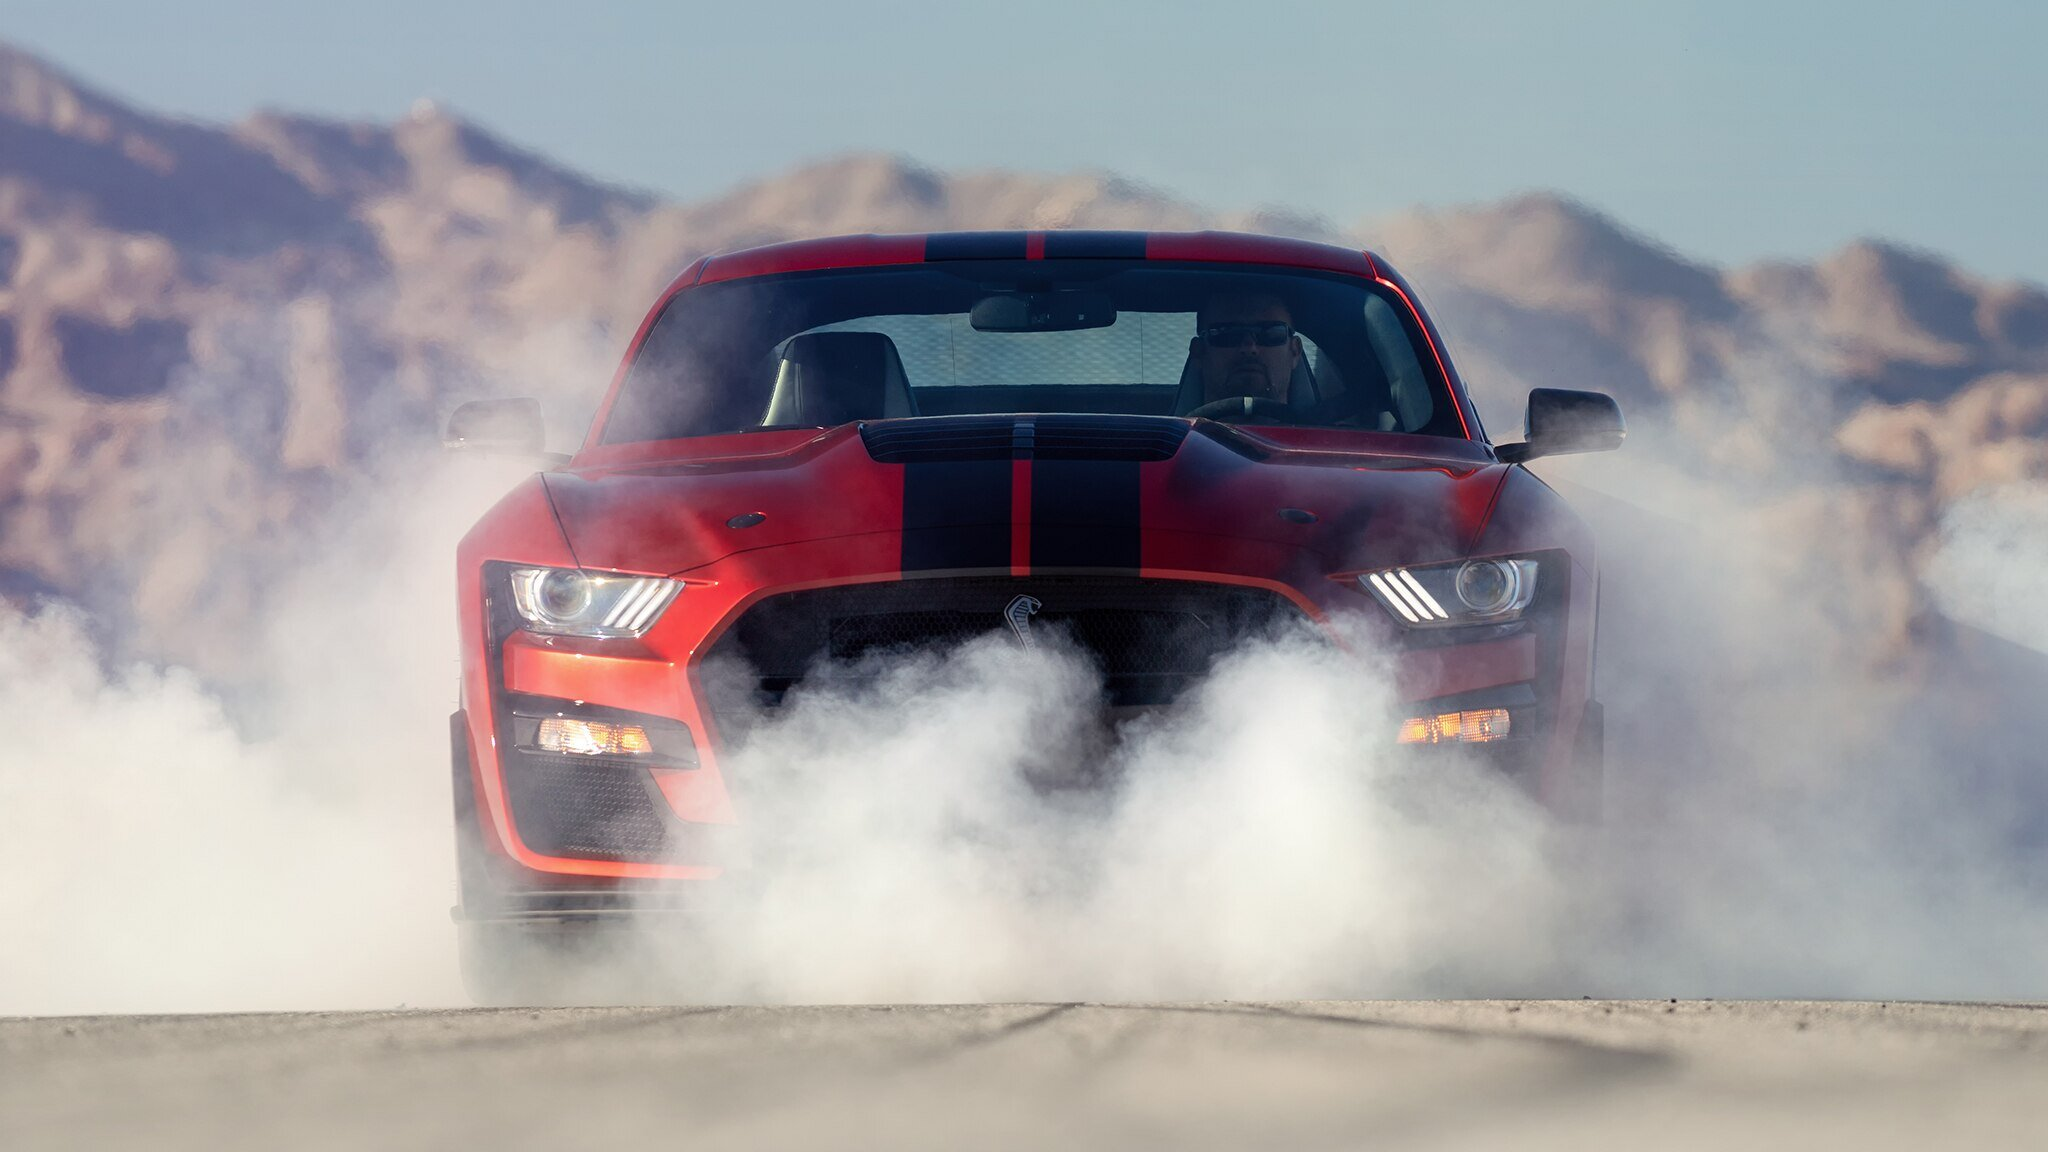 2020-ford-mustang-shelby-gt500-10-6-second-quarter-mile.jpg